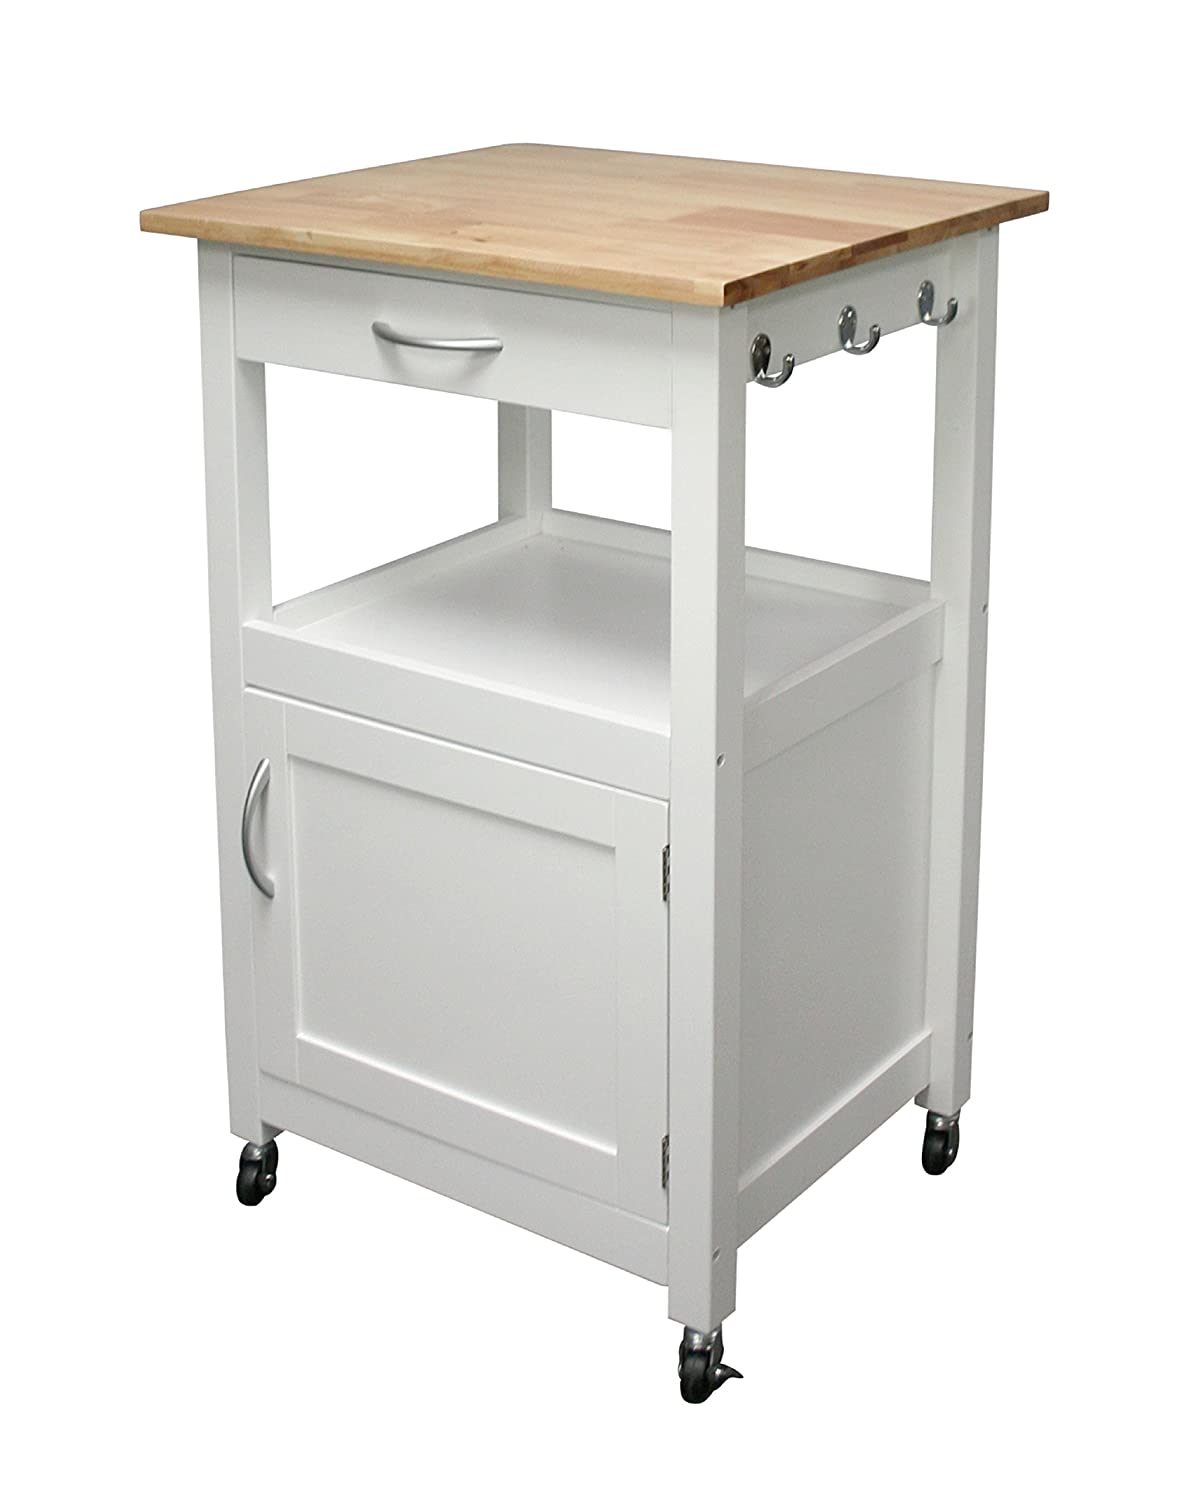 Delightful Amazon.com   EHemco Kitchen Island Cart Natural Wood Top With White Base  (white)   Kitchen Islands U0026 Carts